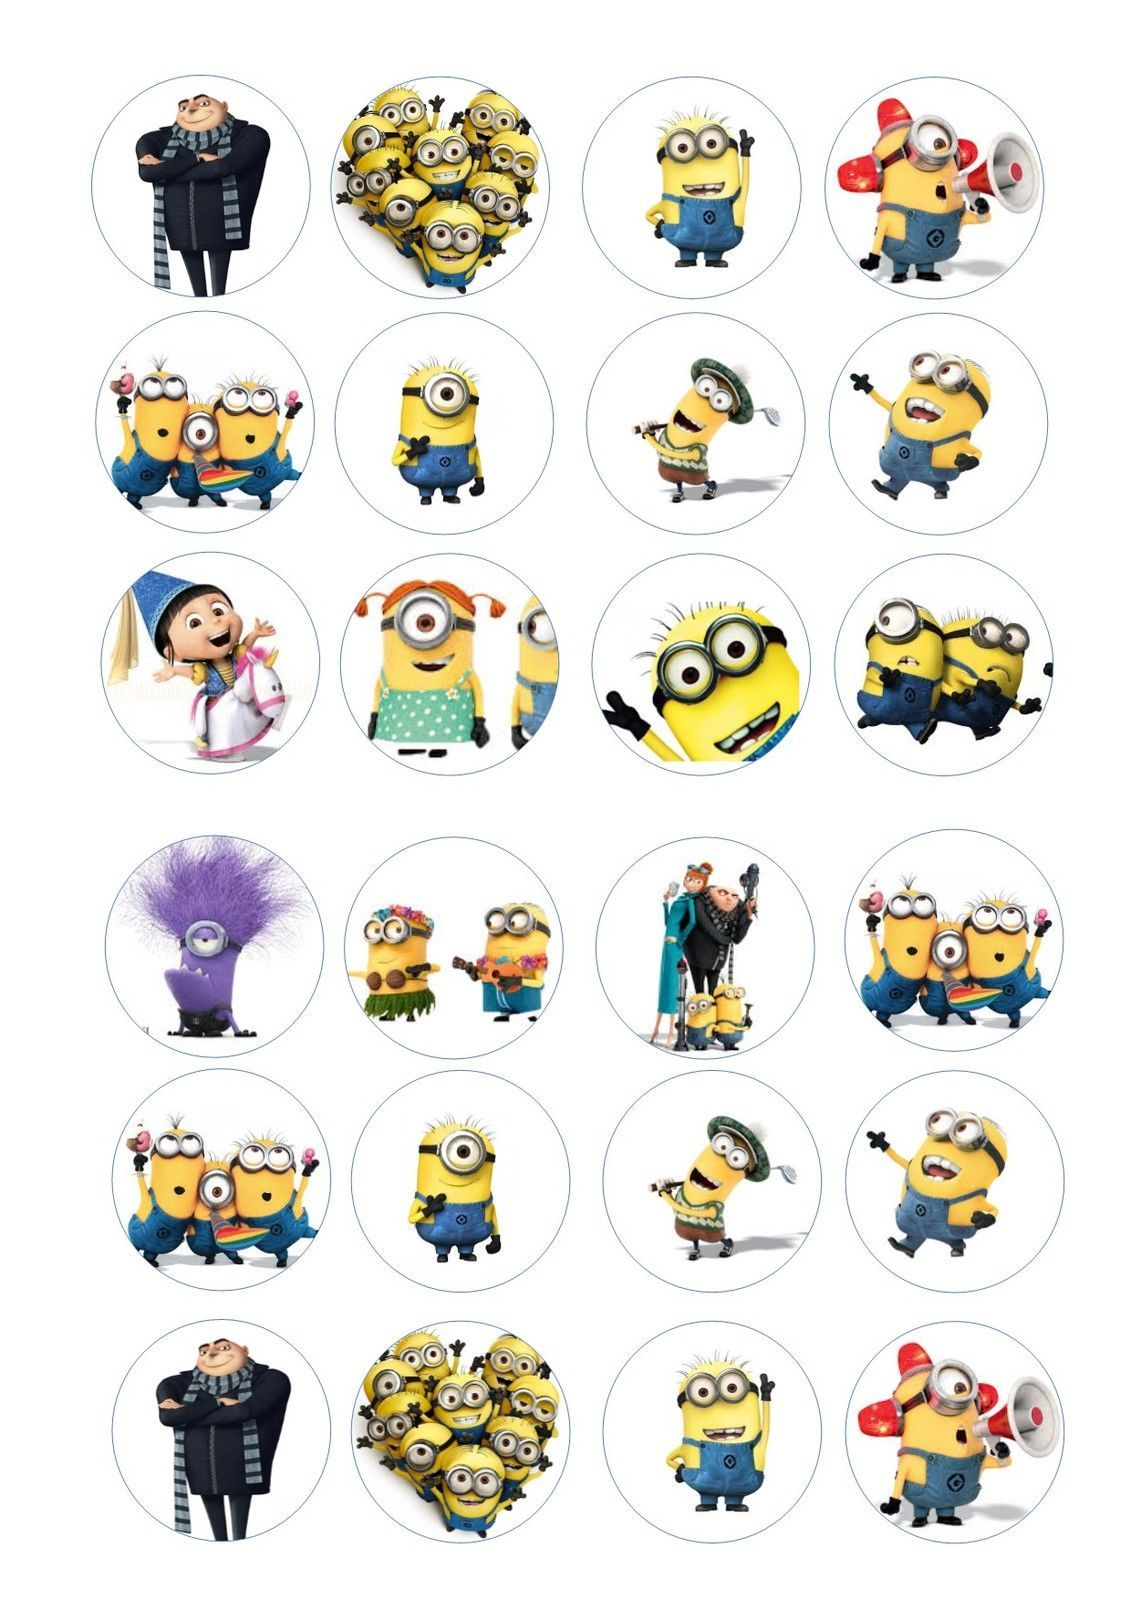 Details about 24 icing cupcake cake toppers decorations ...